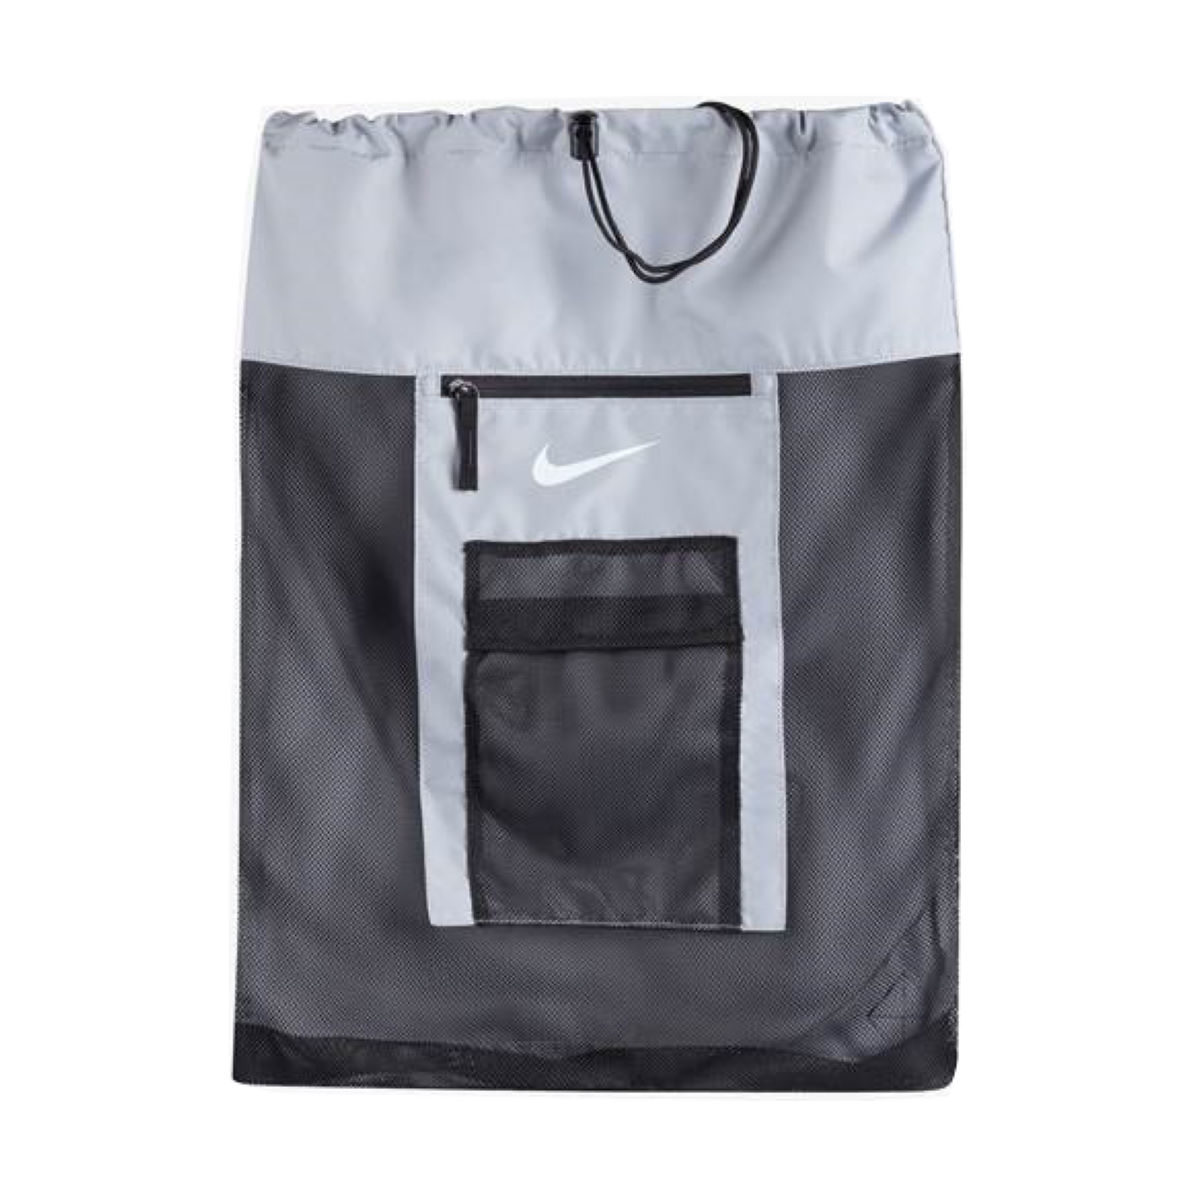 Nike team deck bag internal wolf grey ss18 ness7160 054 2